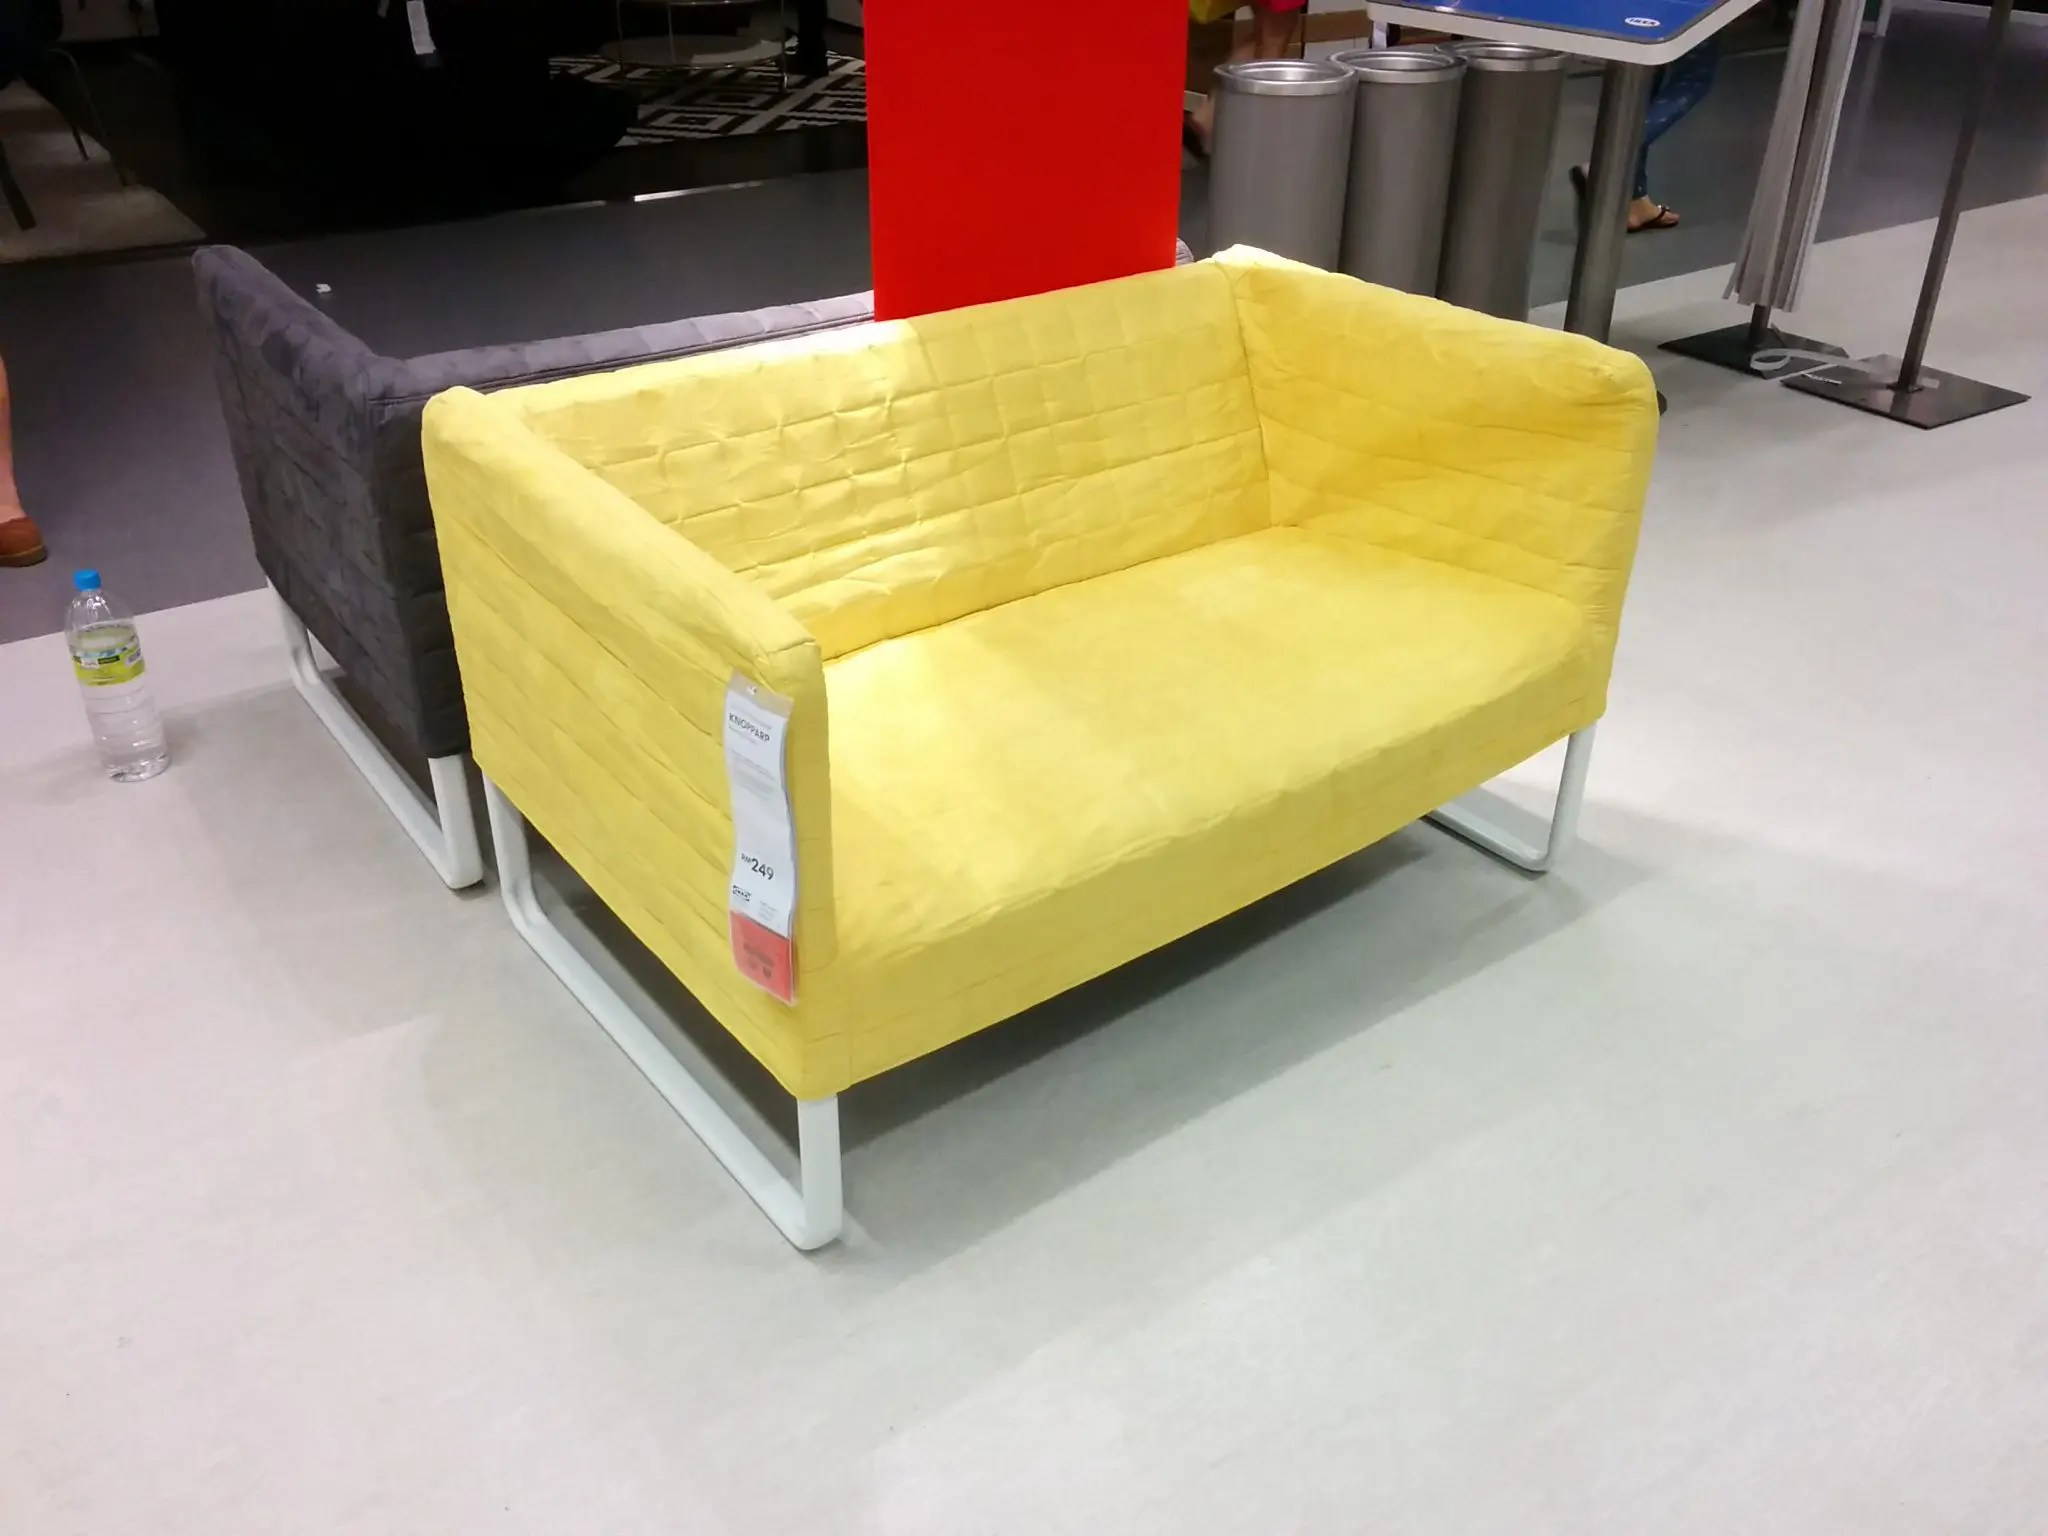 Ikea Knopparp Sofa Super Budget Sofas Ikea Knopparp Klobo And Solsta Review